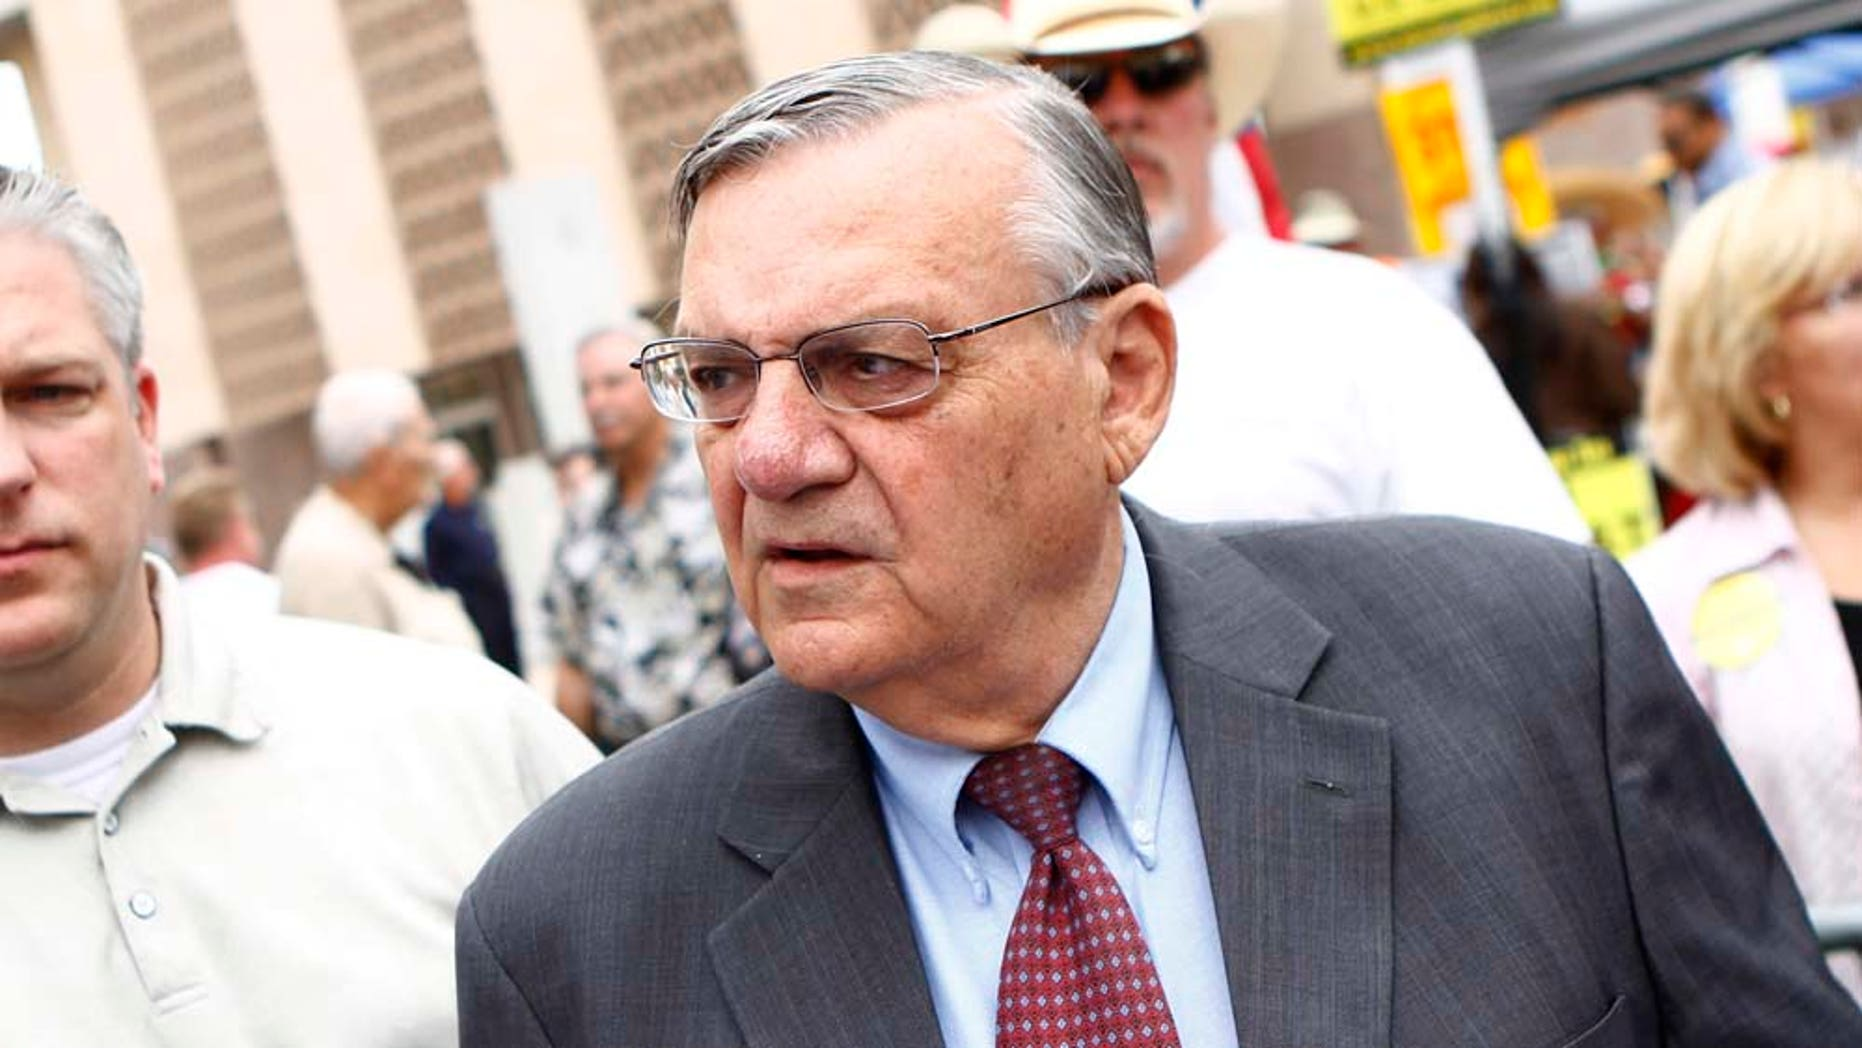 PHOENIX, AZ -  OCTOBER 22:  Maricopa County Sheriff Joe Arpaio (R) attends a rally for the Tea Party Express national tour October 22, 2010 in Phoenix, Arizona. The tour, part of an initiative to get conservatives elected to the House and Senate, will move across country and conclude on November 1, 2010 in Concord, New Hampshire the day before the contentious mid-term elections. (Photo by Joshua Lott/Getty Images)